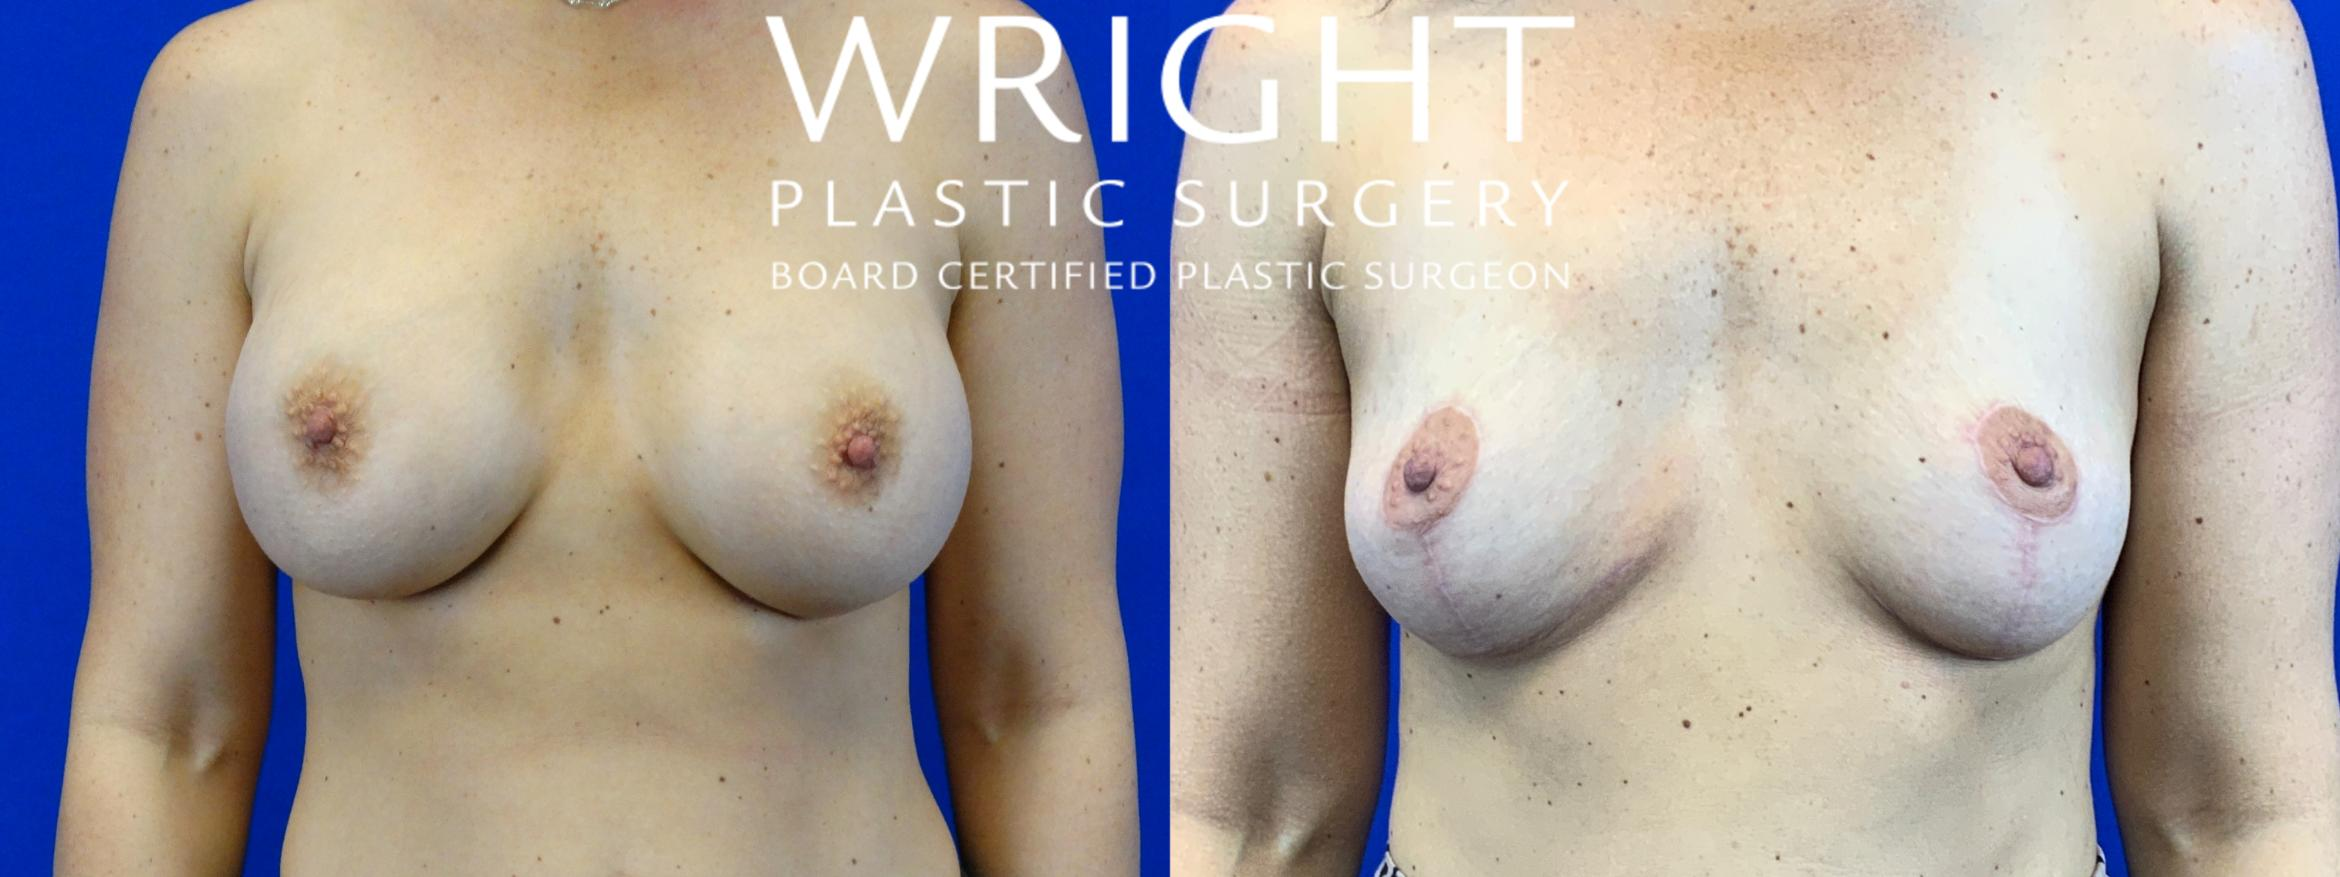 Breast Implant Removal Case 56 Before & After Front | Little Rock, Arkansas | Dr. Wright Plastic Surgery